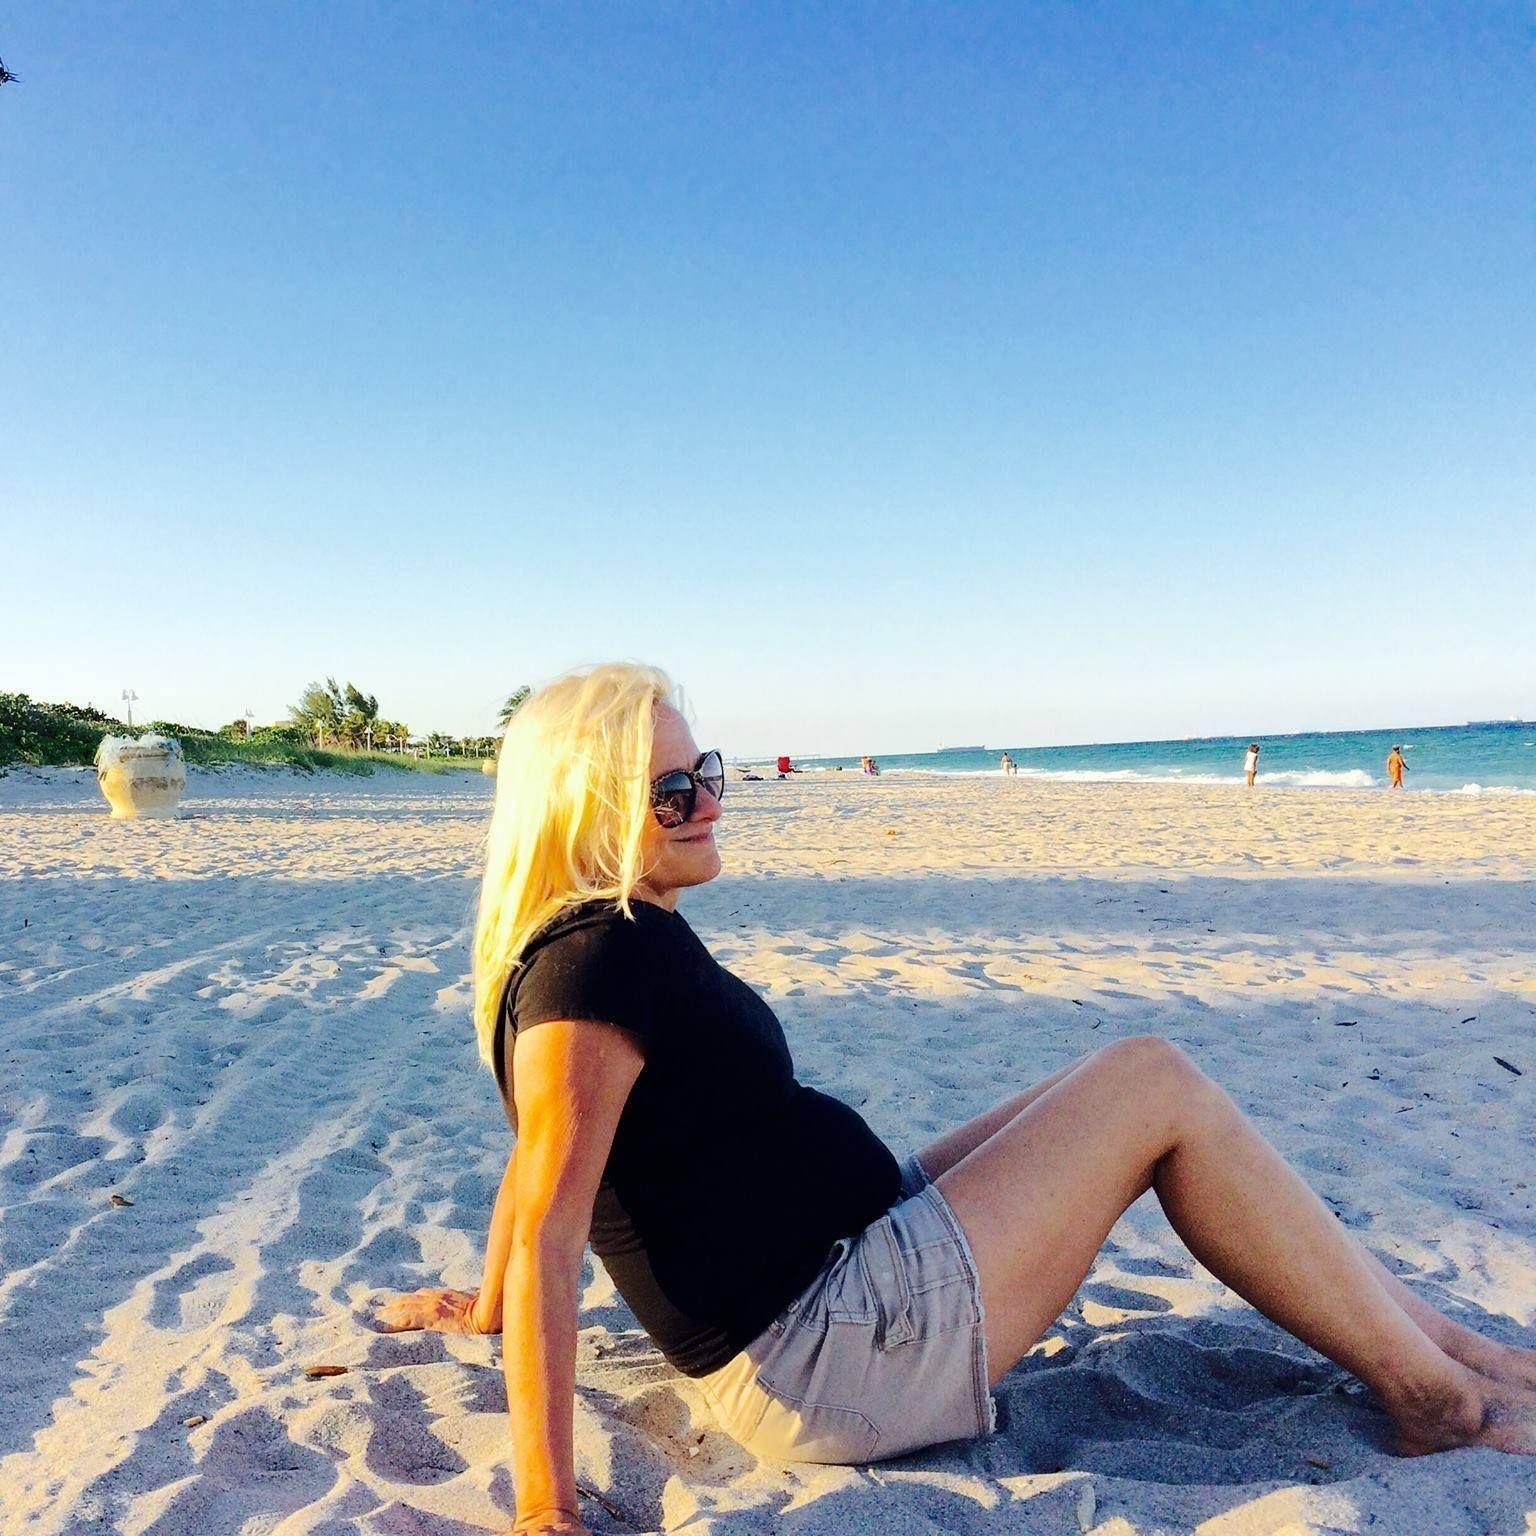 hallandale single girls Meet hallandale singles online & chat in the forums dhu is a 100% free dating site to find personals & casual encounters in hallandale.